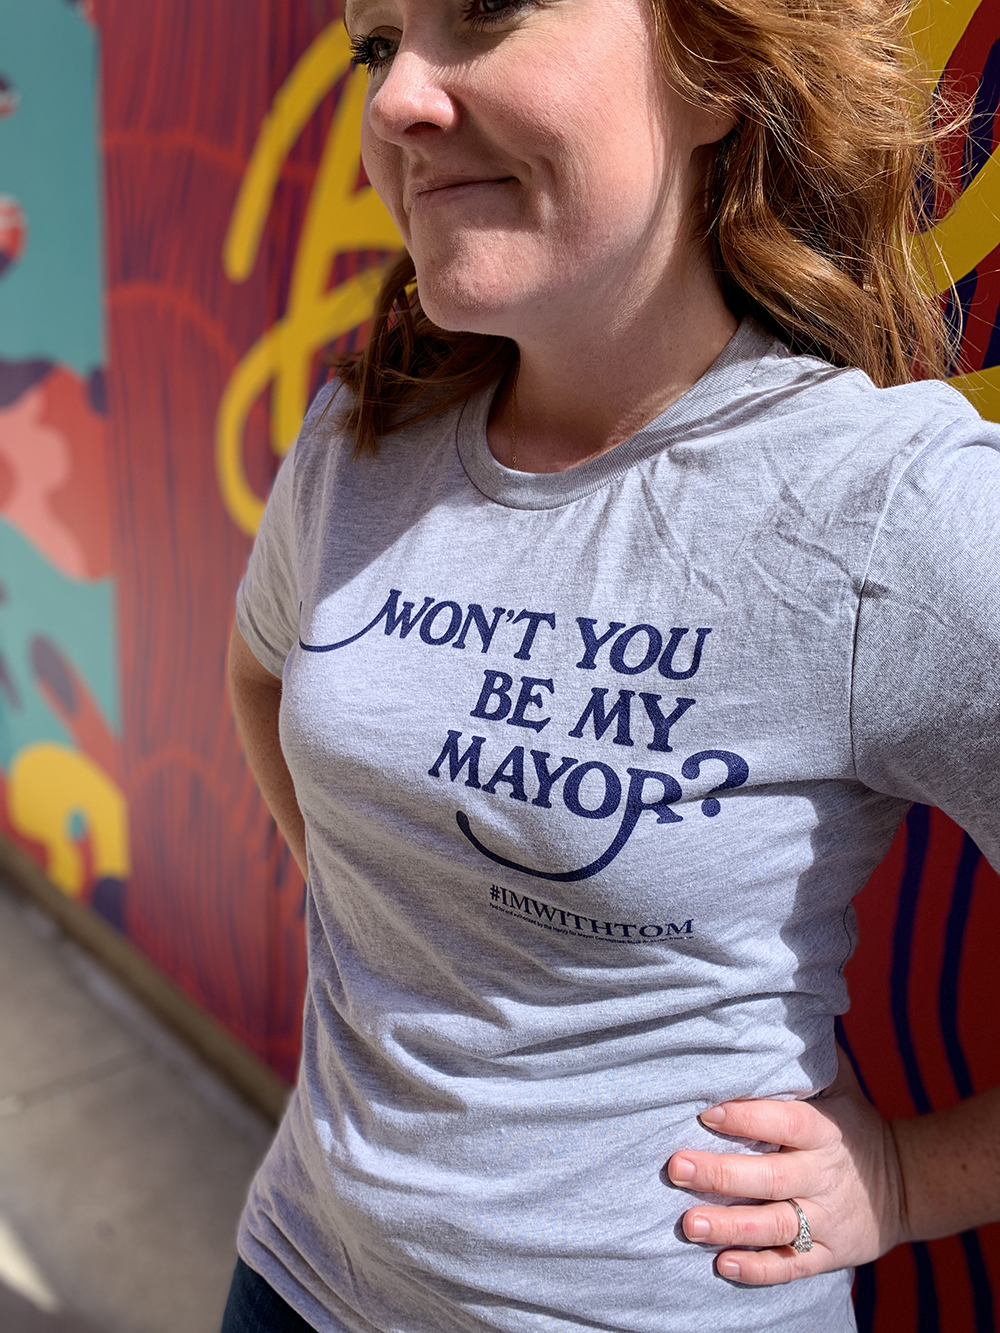 Photo of the Won't You Be My Mayor campaign t-shirt